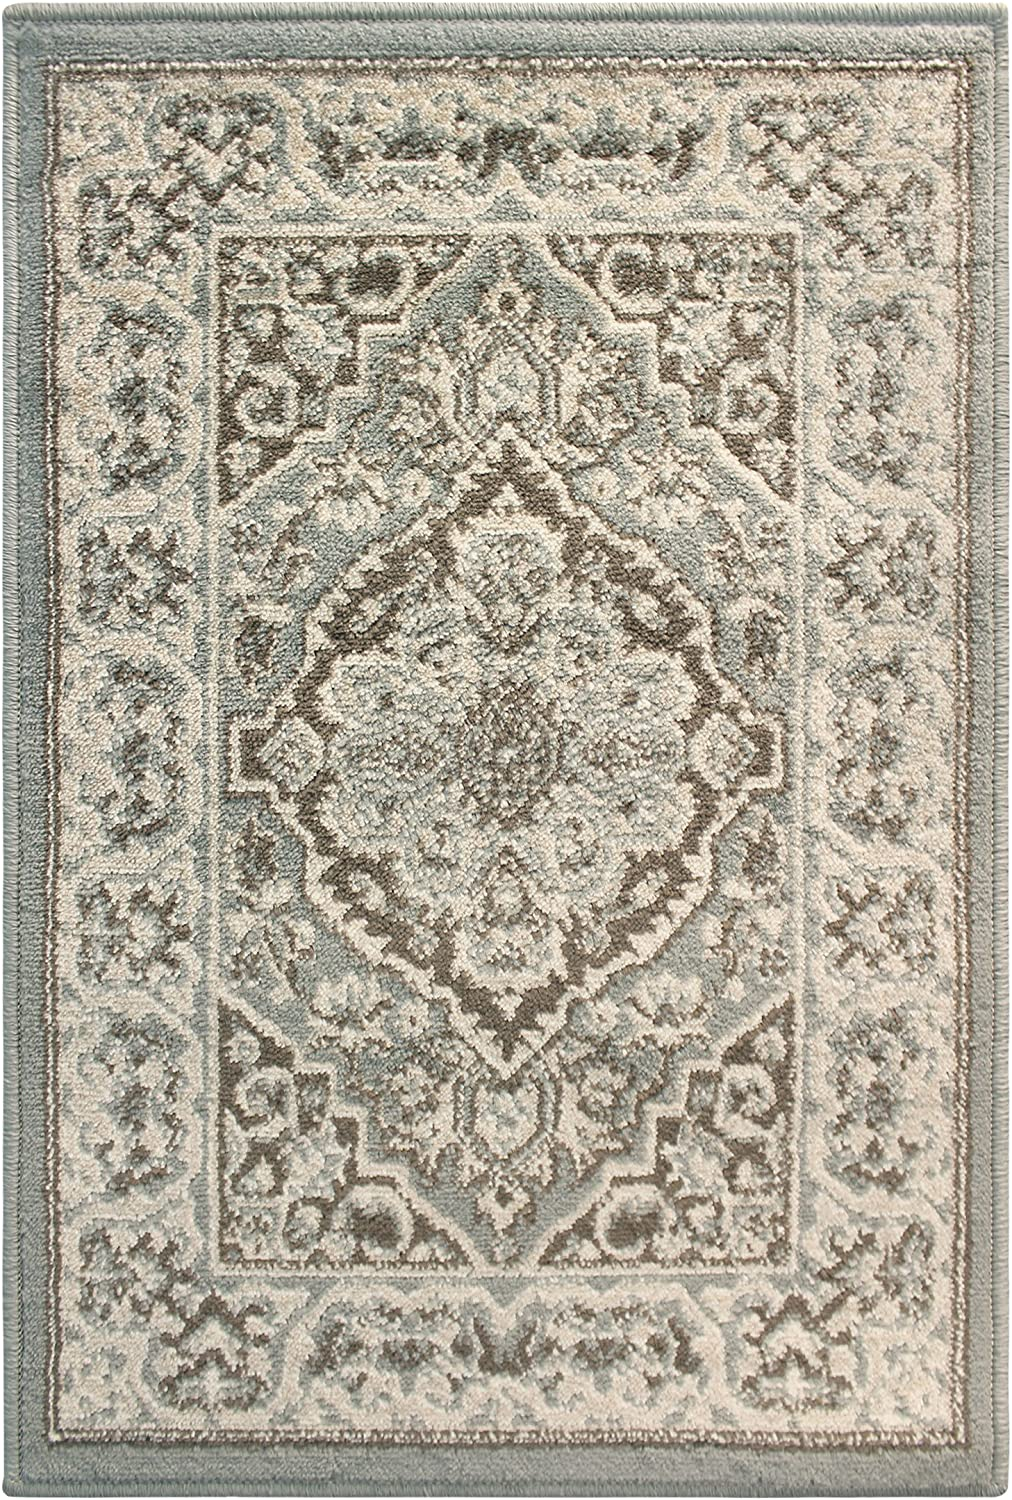 SUPERIOR Glendale Collection Area Rug - Traditional Brown Oriental Rug, 8 mm Pile, Jute Backing Floor Rug, Grey, 3' x 5'